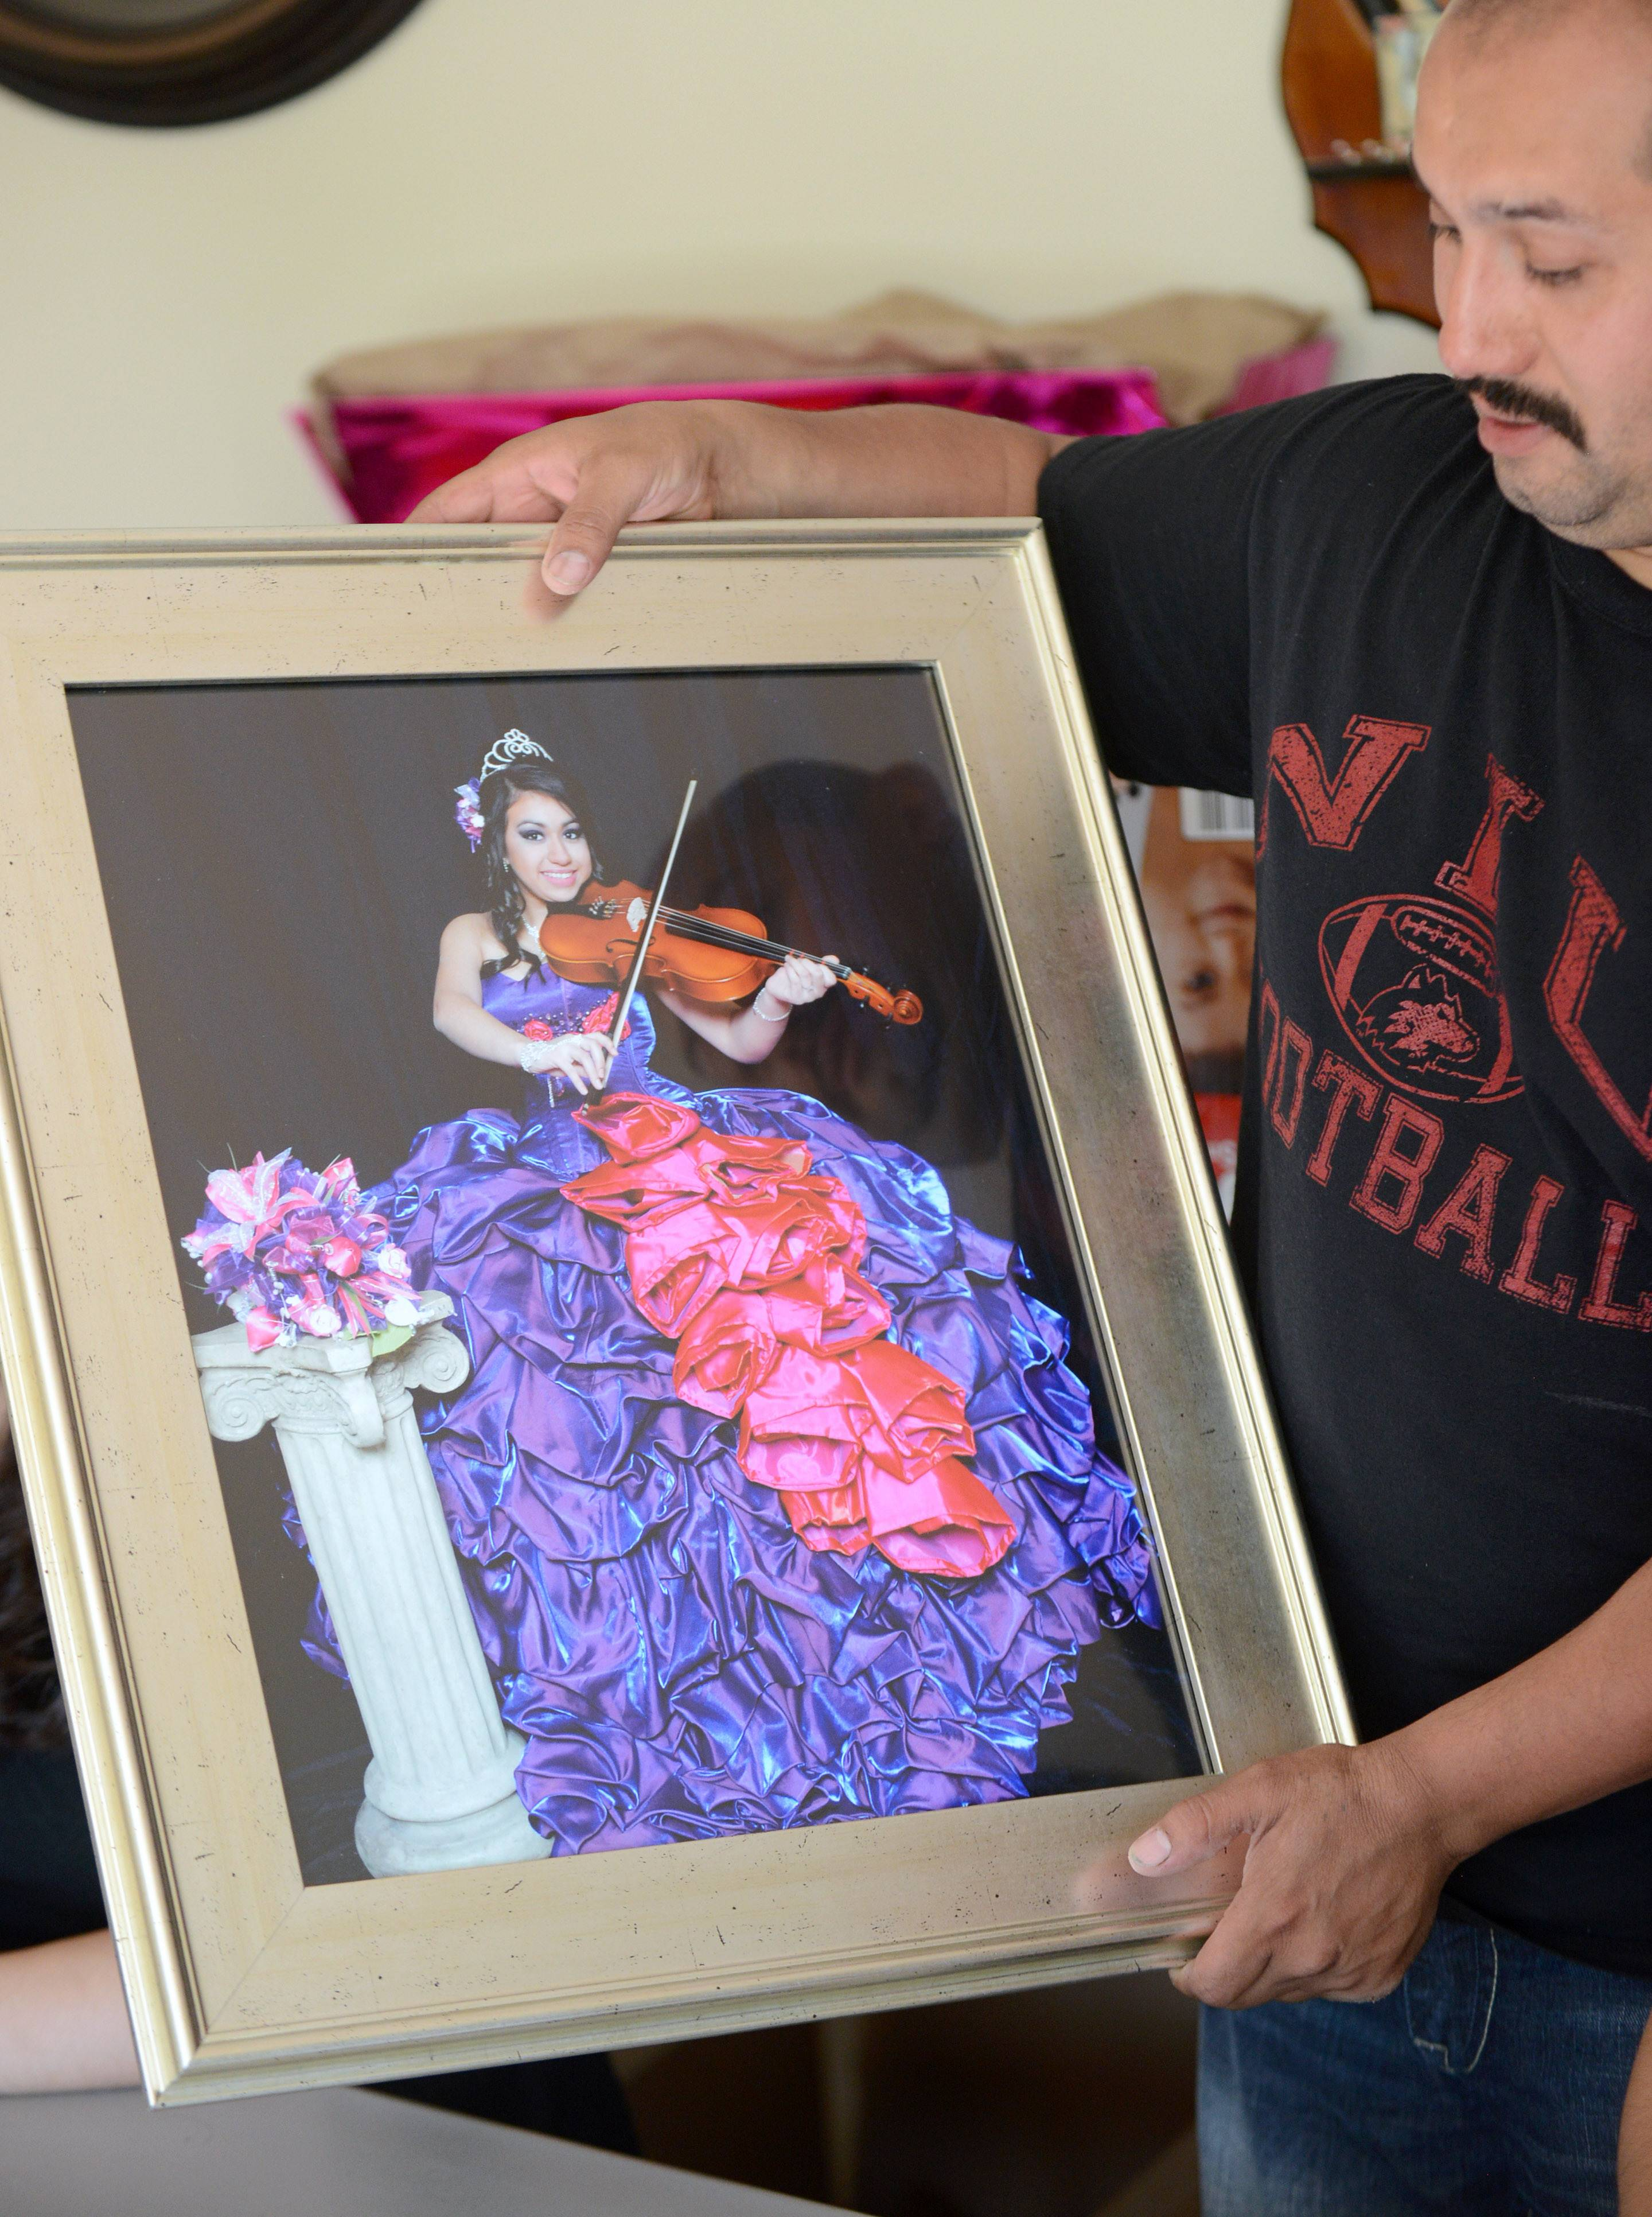 José Huerta shows a photo of his daughter in the quinceañera dress his wife, Brandy, won for her.